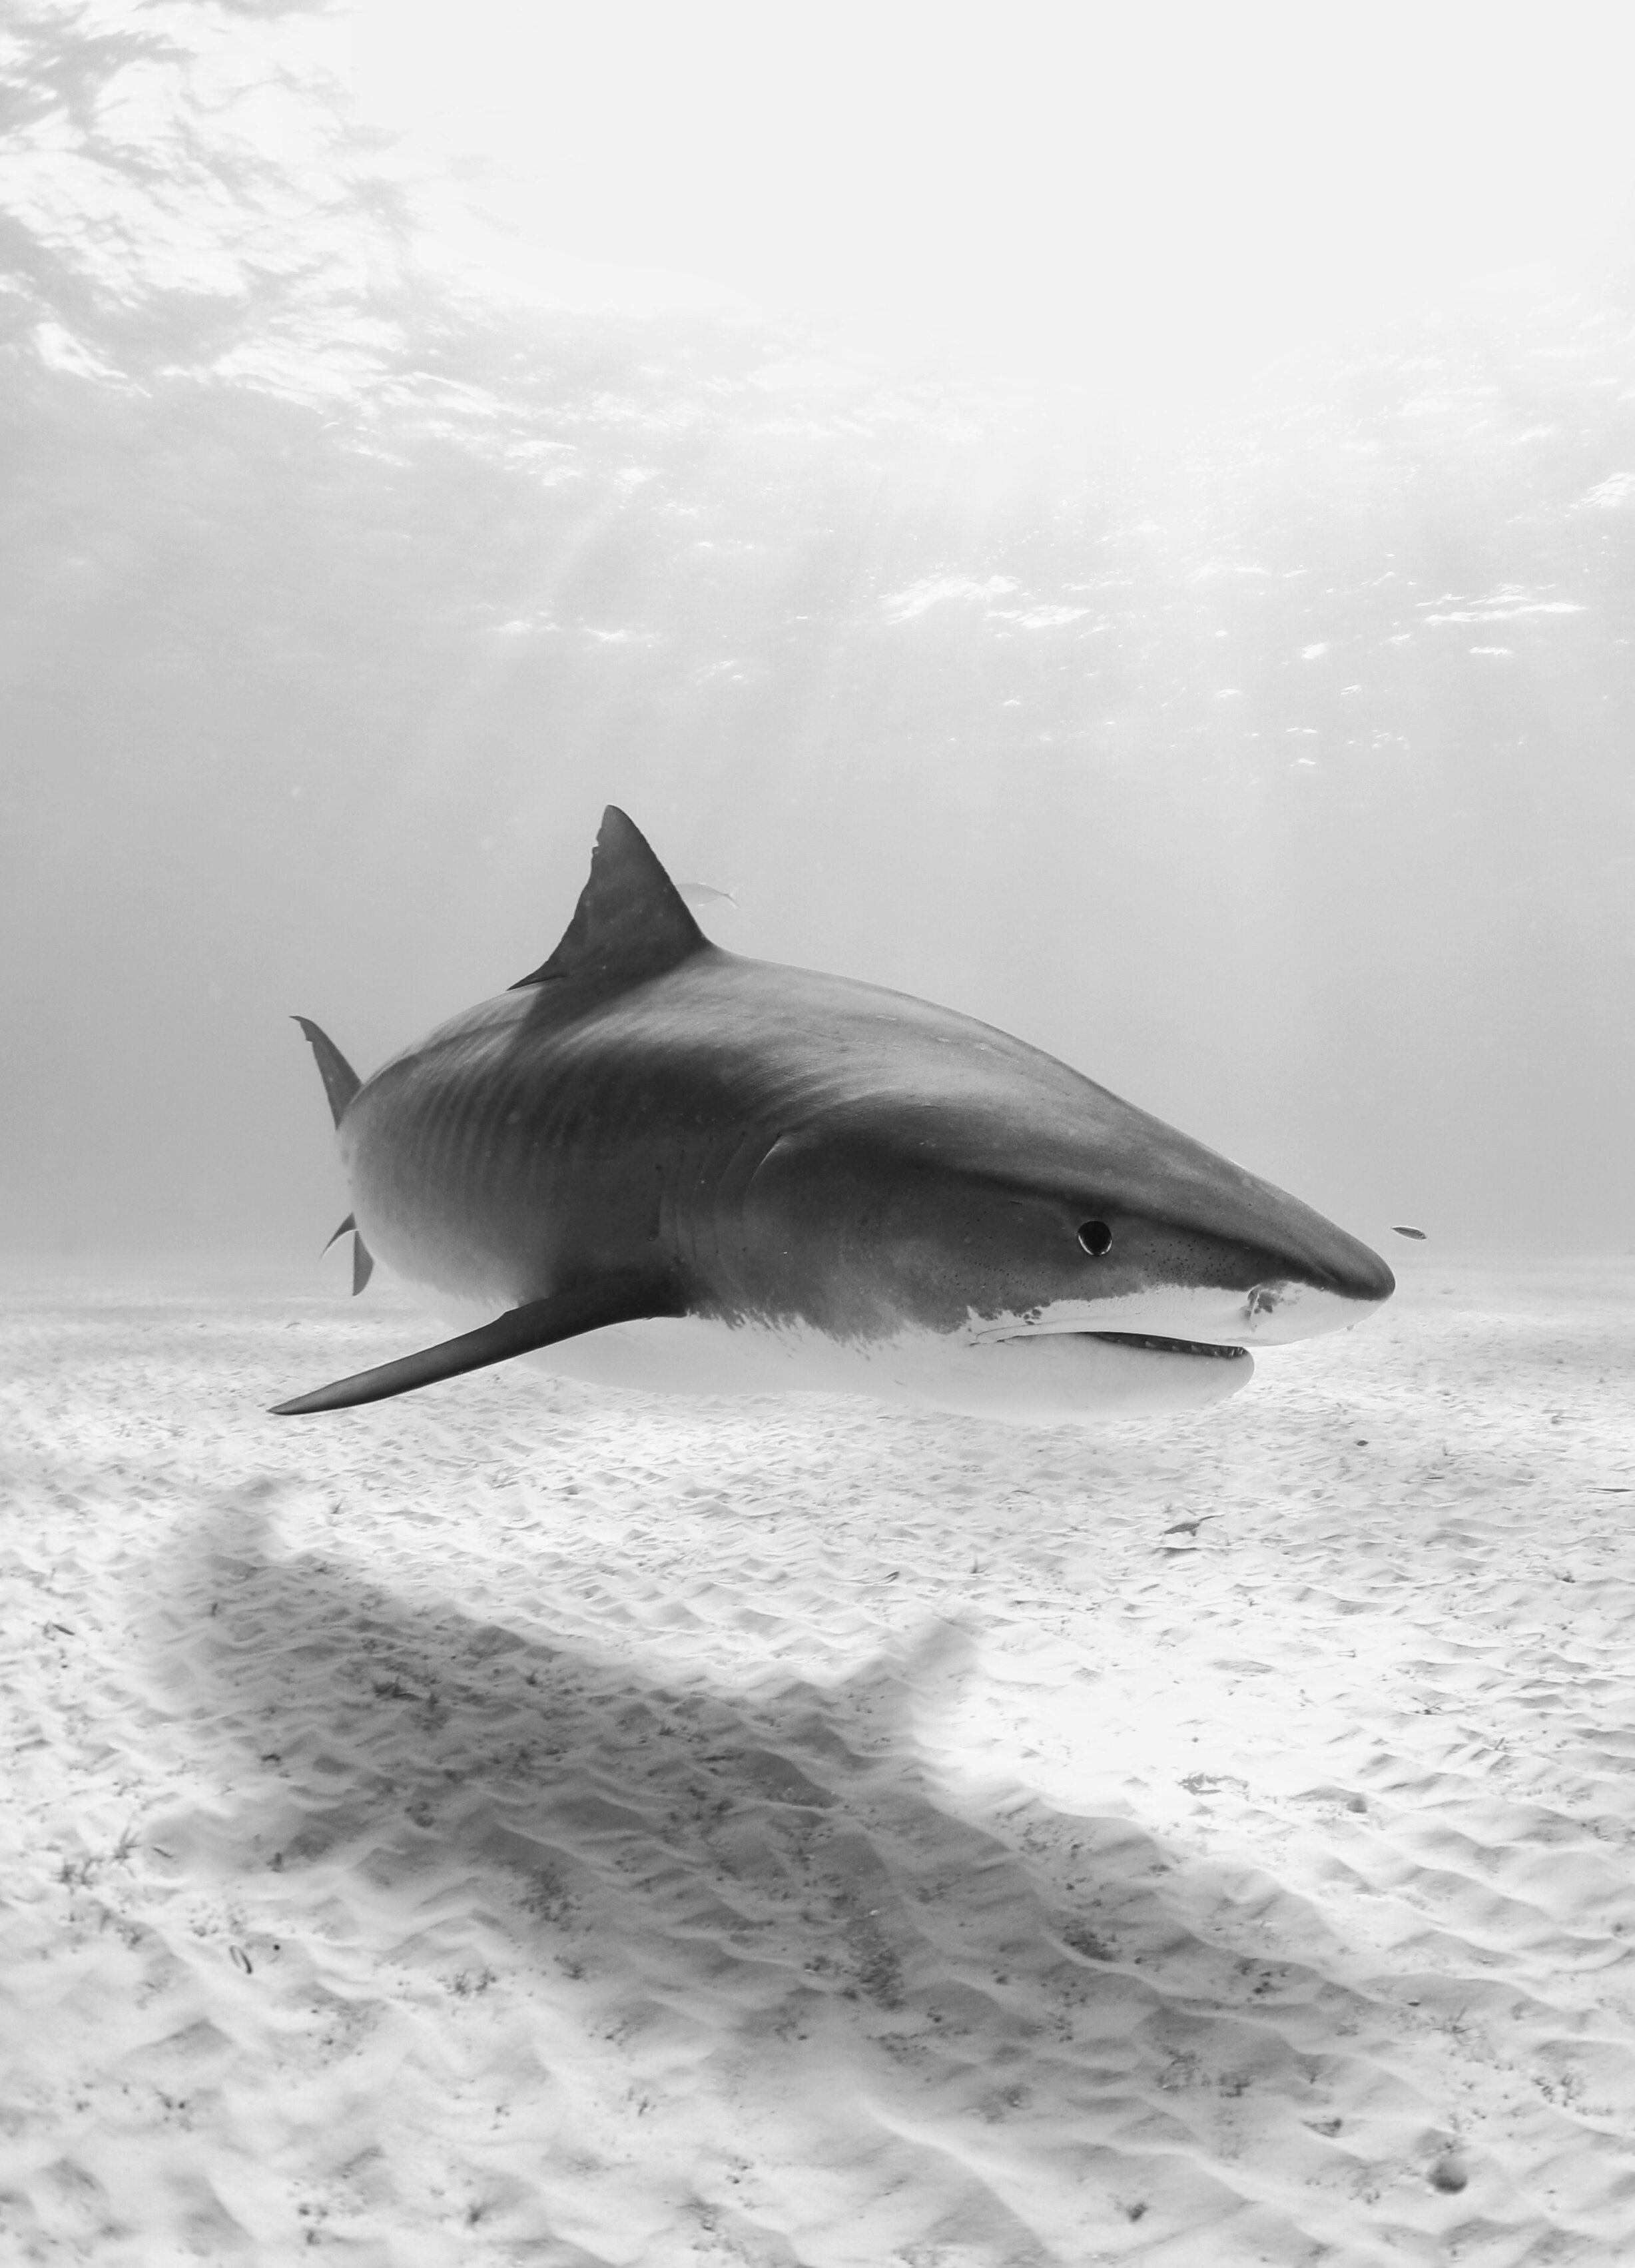 photo of Caribbean sharks in need of large marine protected areas image